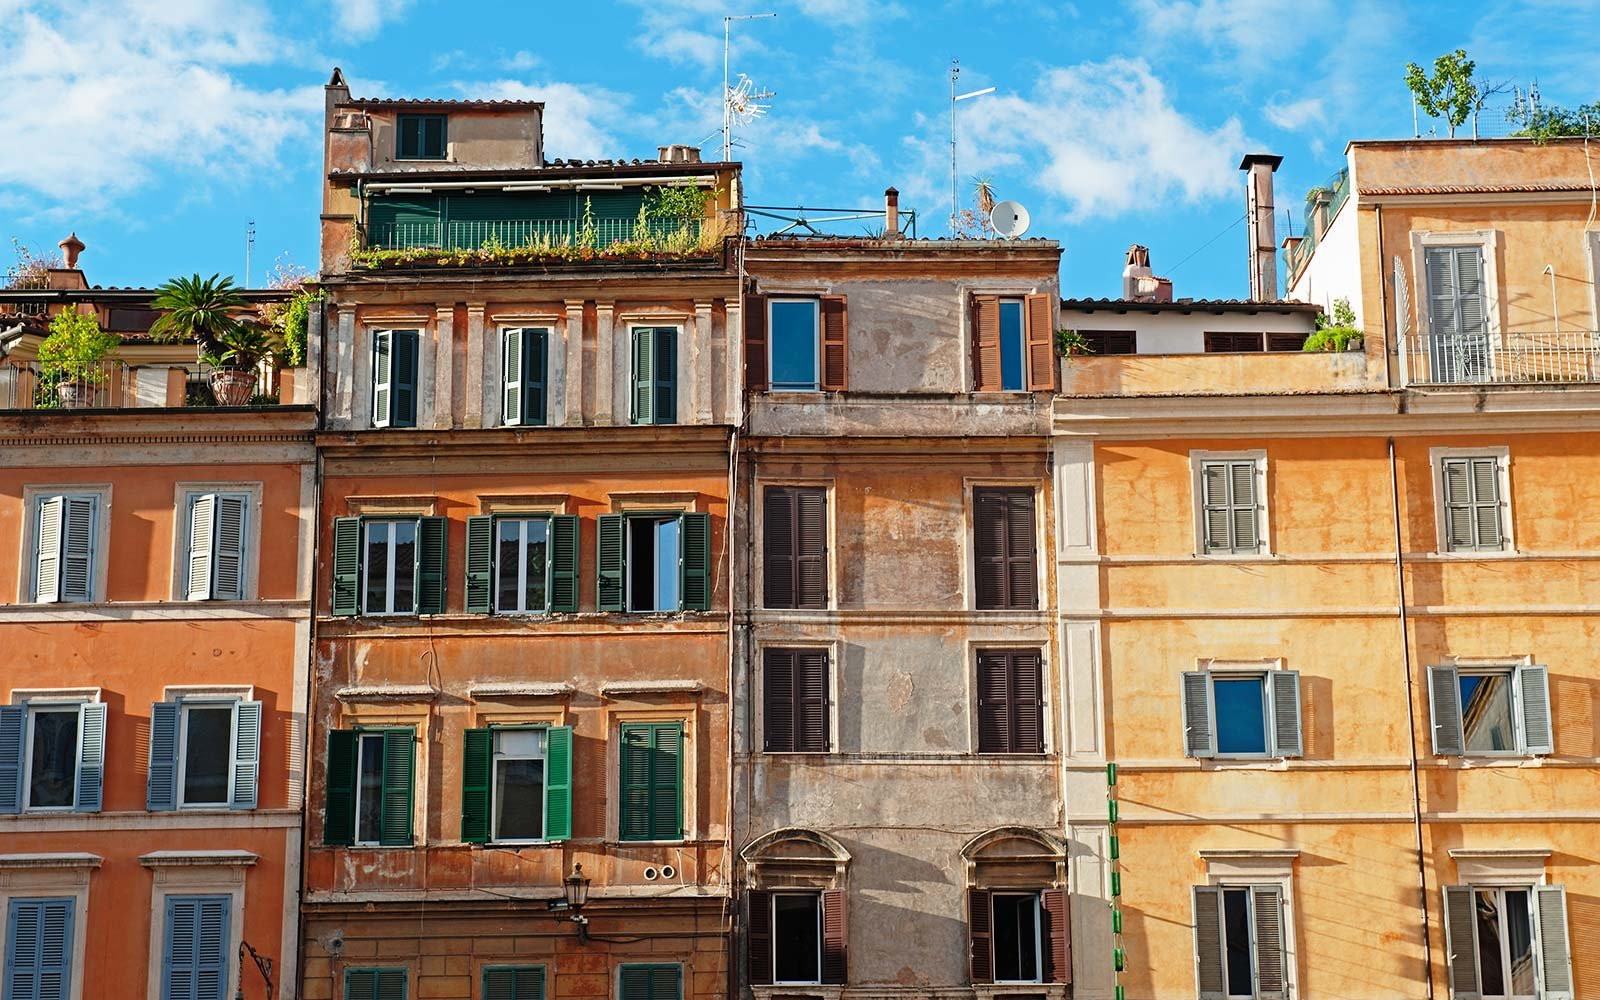 8 of the top airbnbs in rome for your money travel leisure for Great small hotels italy